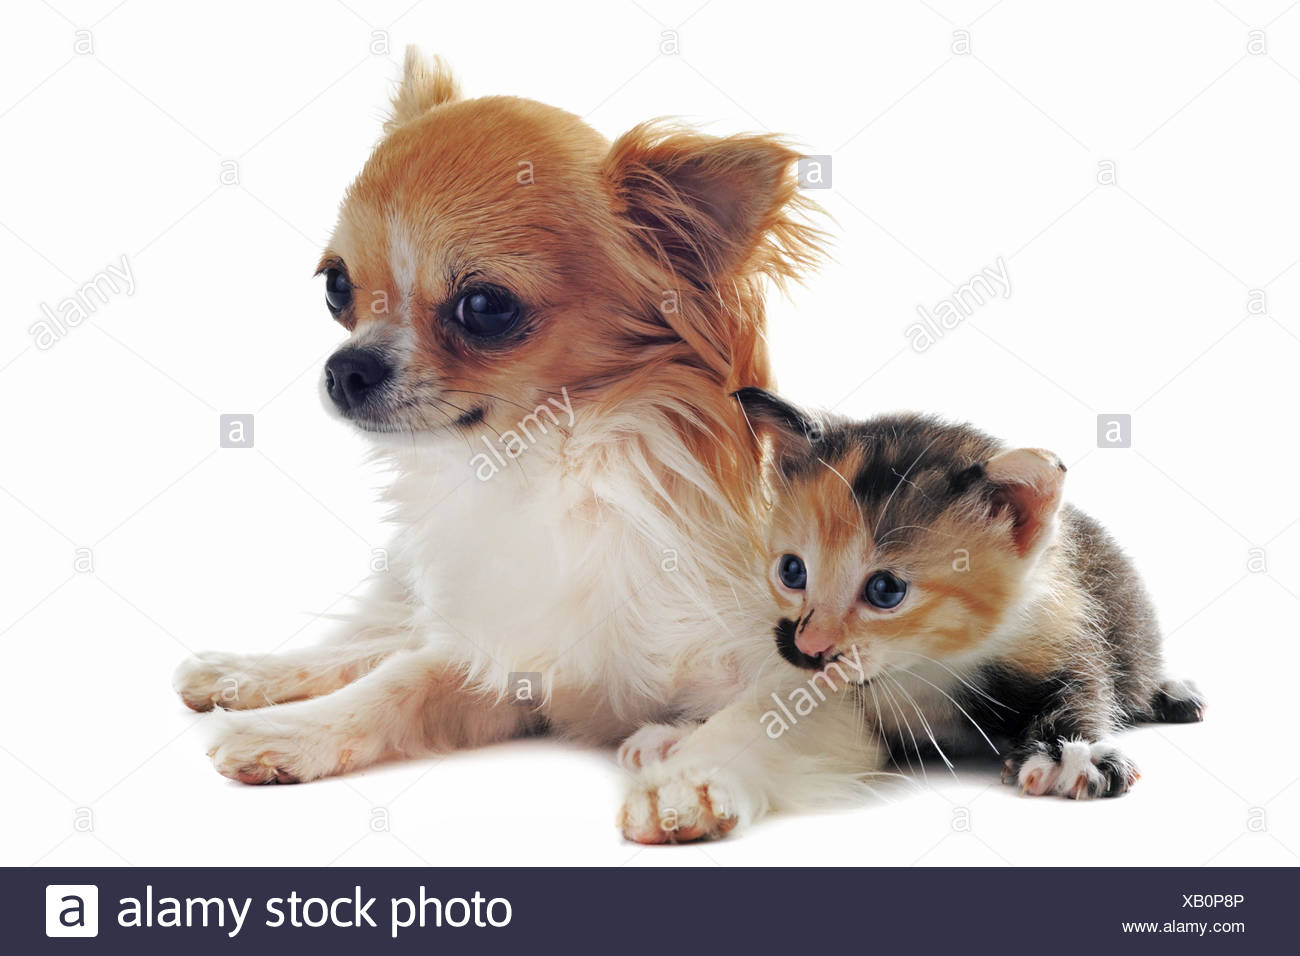 Friendship Cats Dog Puppy Cat Baby Kitten Pussycat Cat Domestic Cat Stock Photo Alamy